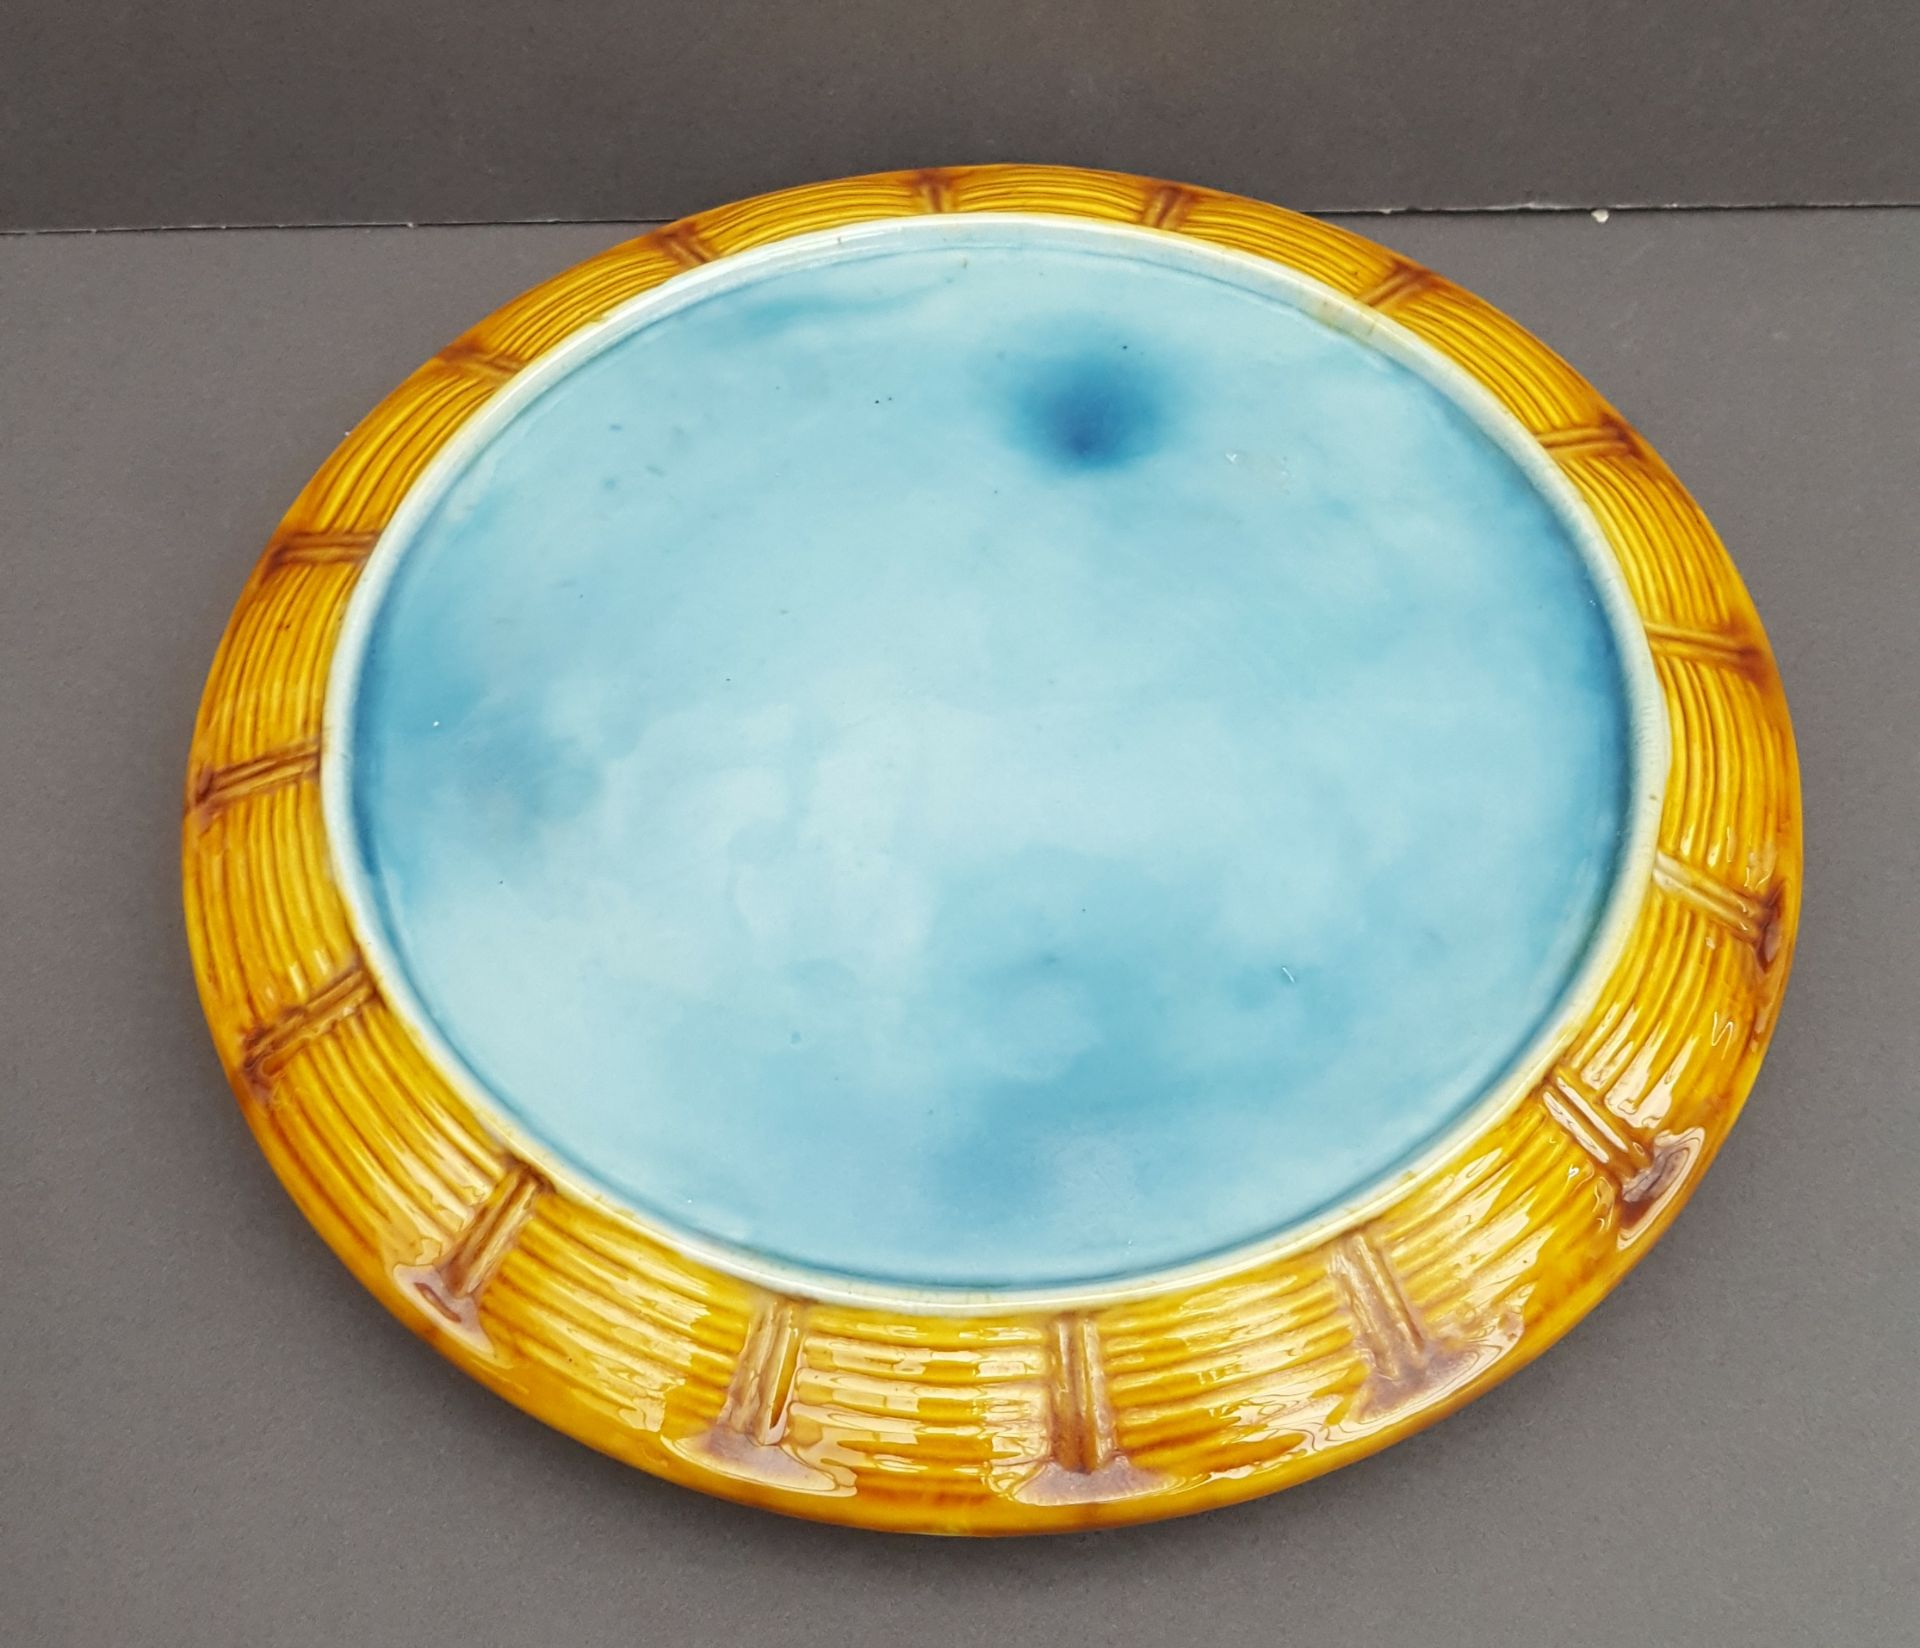 Lot 34 - Antique Large Majolica Cheese Dish